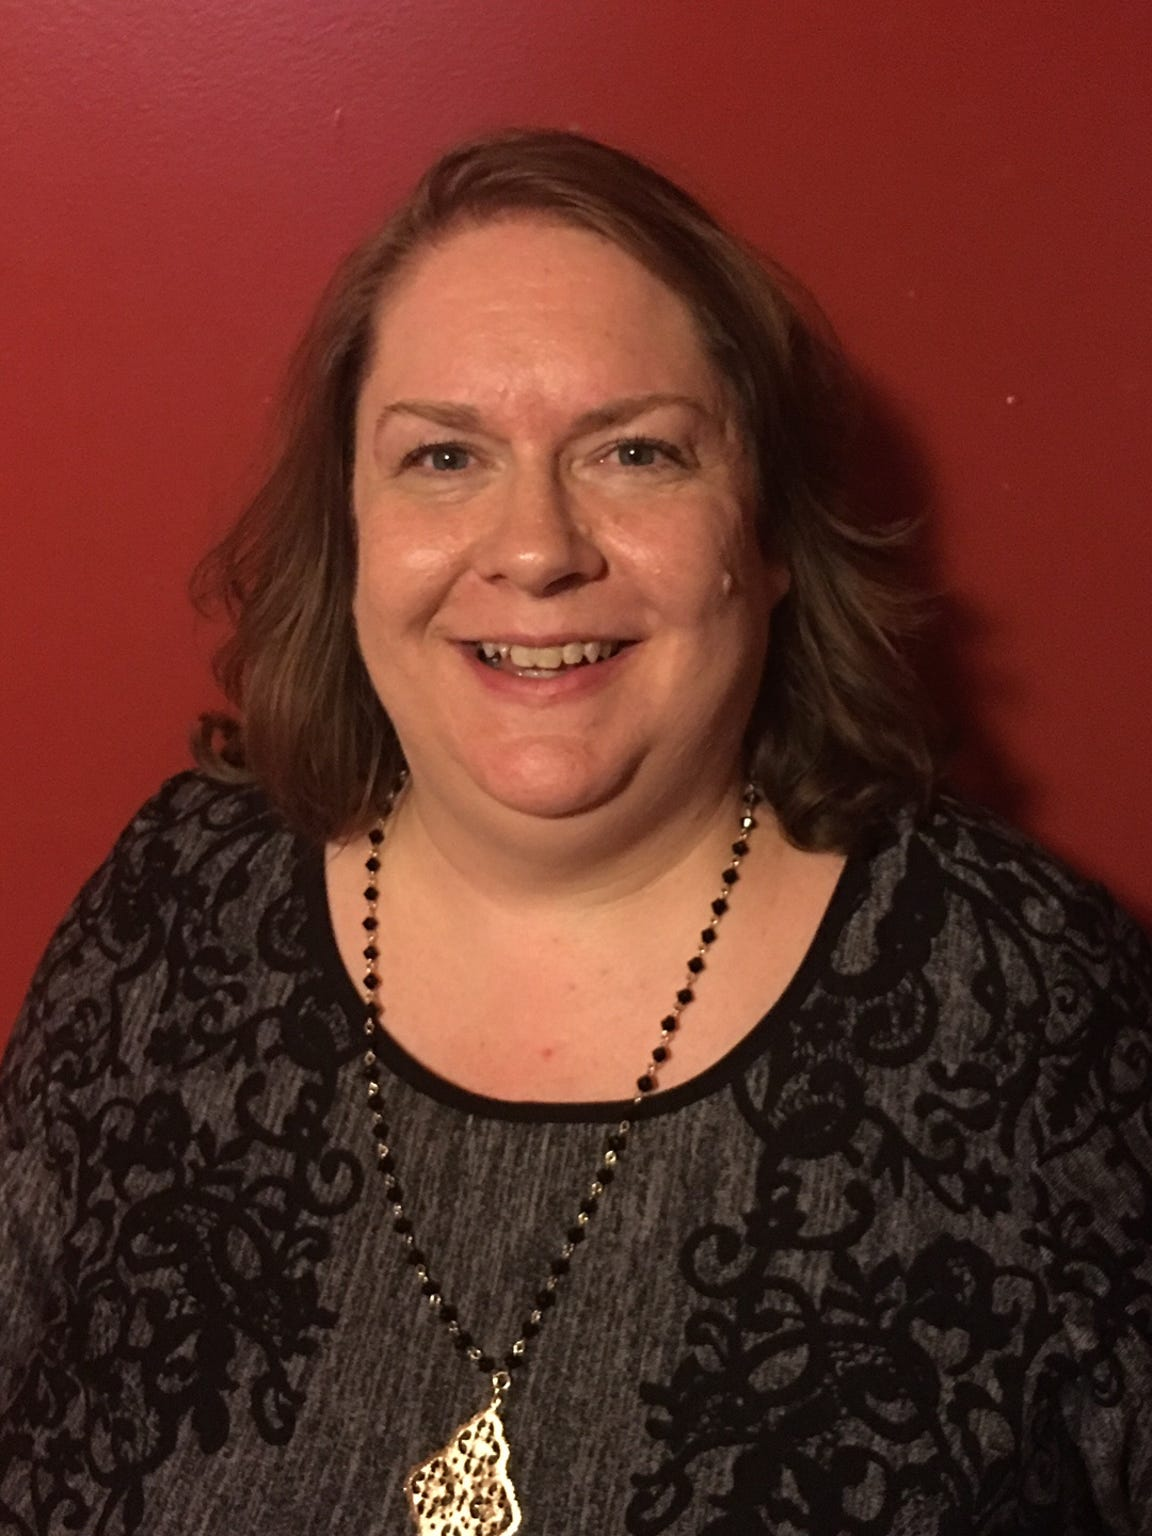 Gail Belokur became the executive director at Cider Mill Playhouse in March 2014.